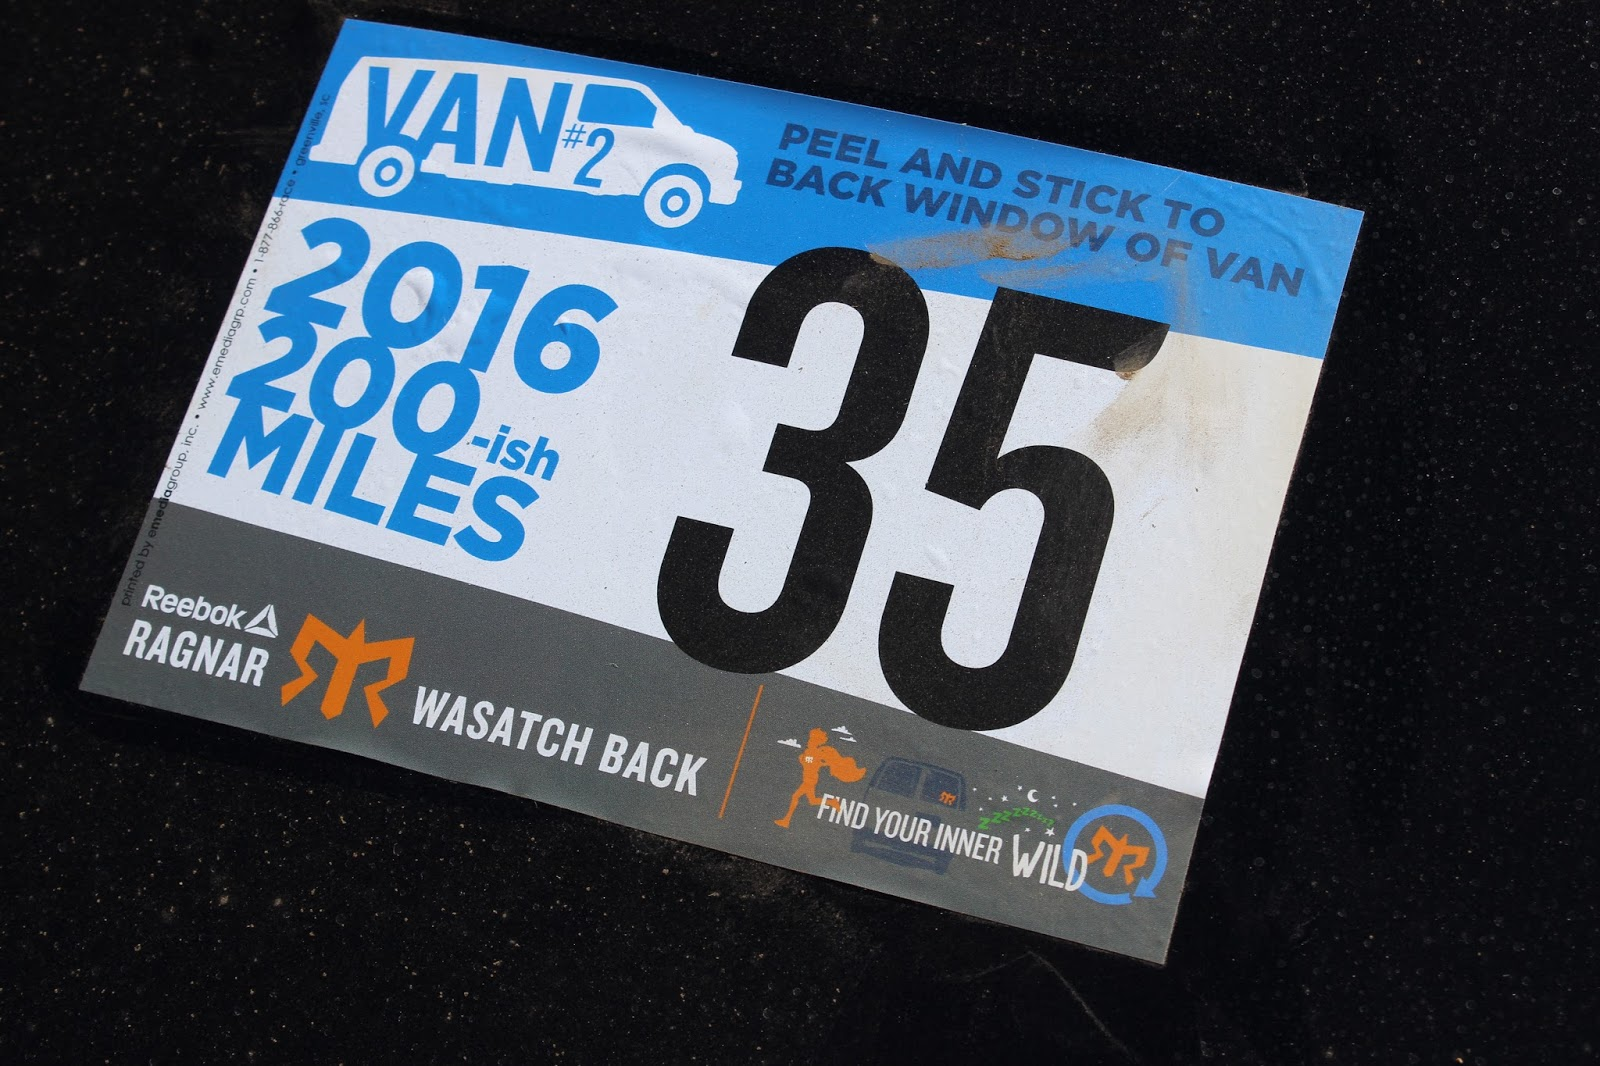 2016 Ragnar Wasatch Back Van 2 Bib